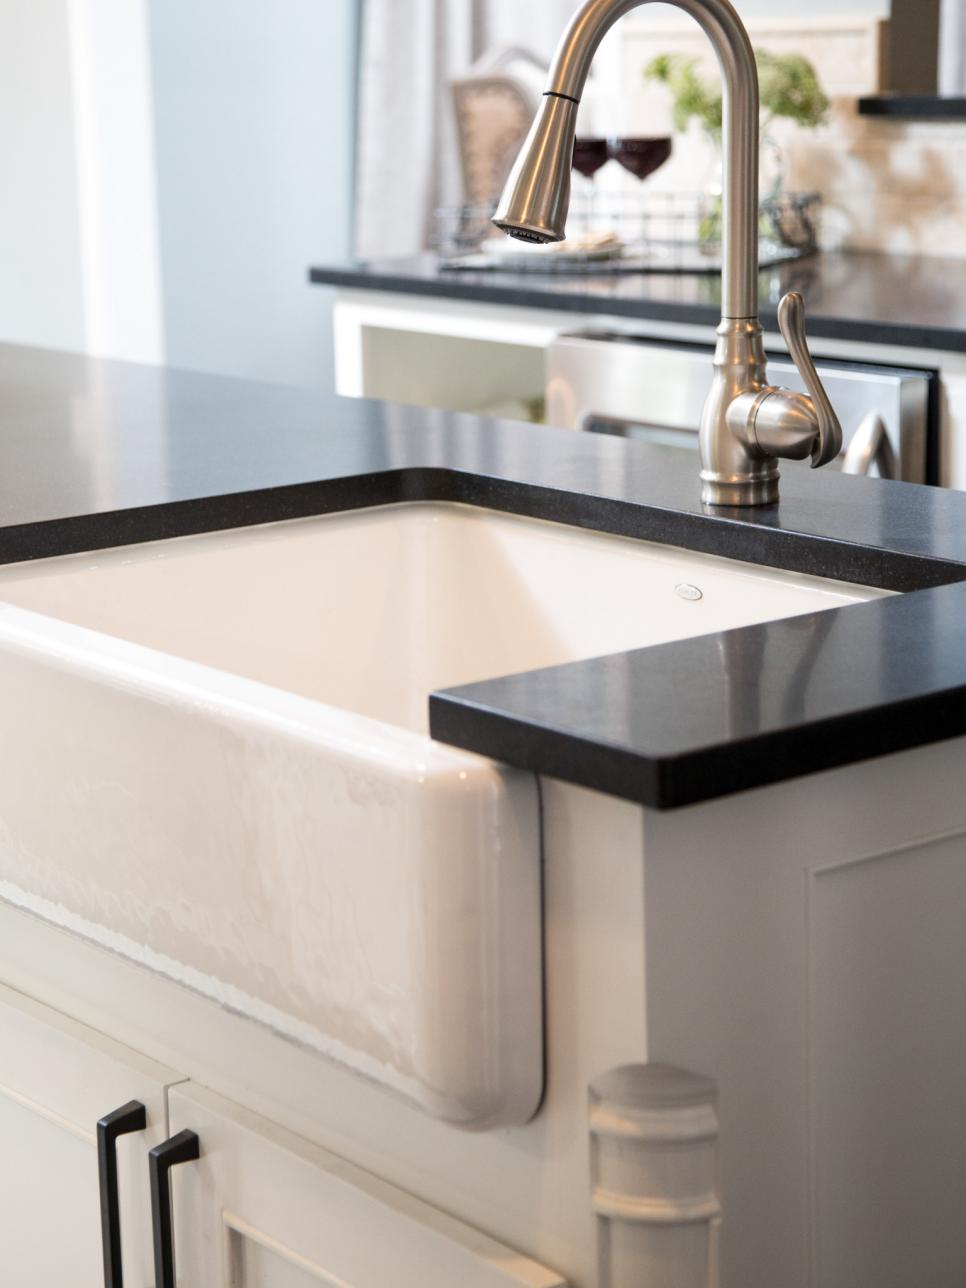 Fixer upper kitchen sink - The Exposed Fronts Typically Make It Easier To Reach In And Clean Making Them The Perfect Combination Of Aesthetic Appeal And Practicality